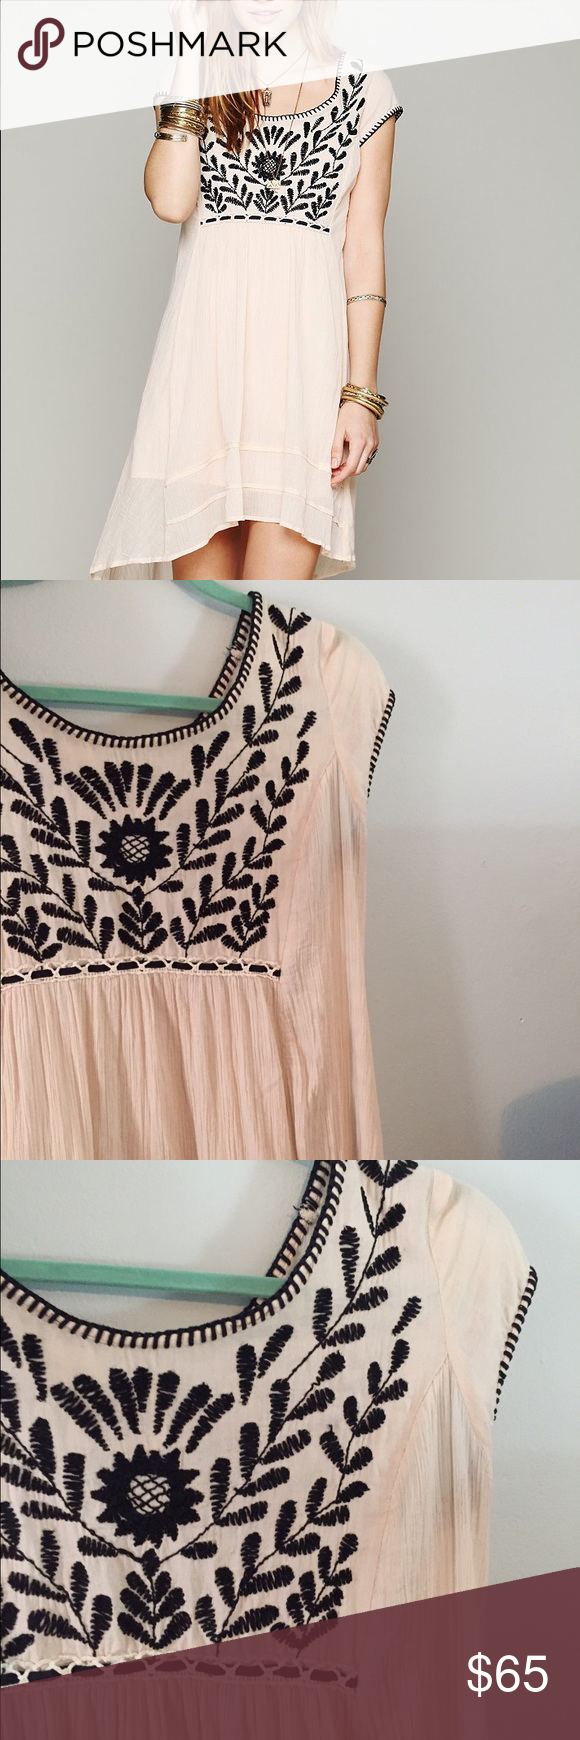 Free People marina embroidered dress Great condition. Very popular FP dress. Beautiful embroidery. Tag says medium but would also fit larger sizes. Flowy. Free People Dresses